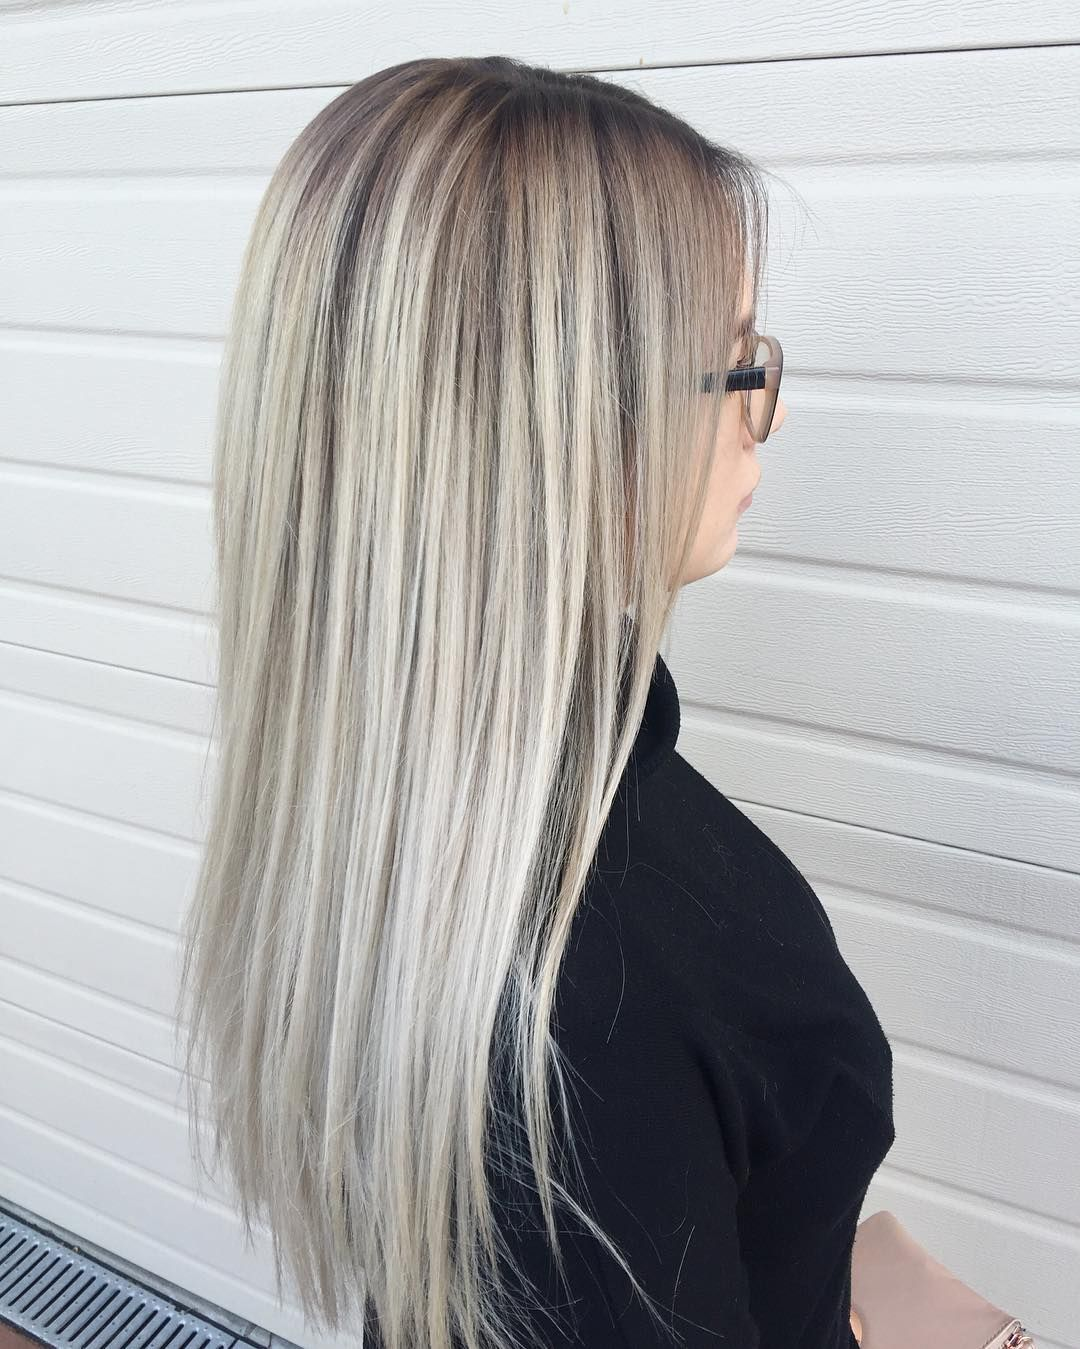 50 Stunning Light And Dark Ash Blonde Hair Color Ideas Trending Now Ash Blonde Hair Colour Blonde Hair Color Hair Styles